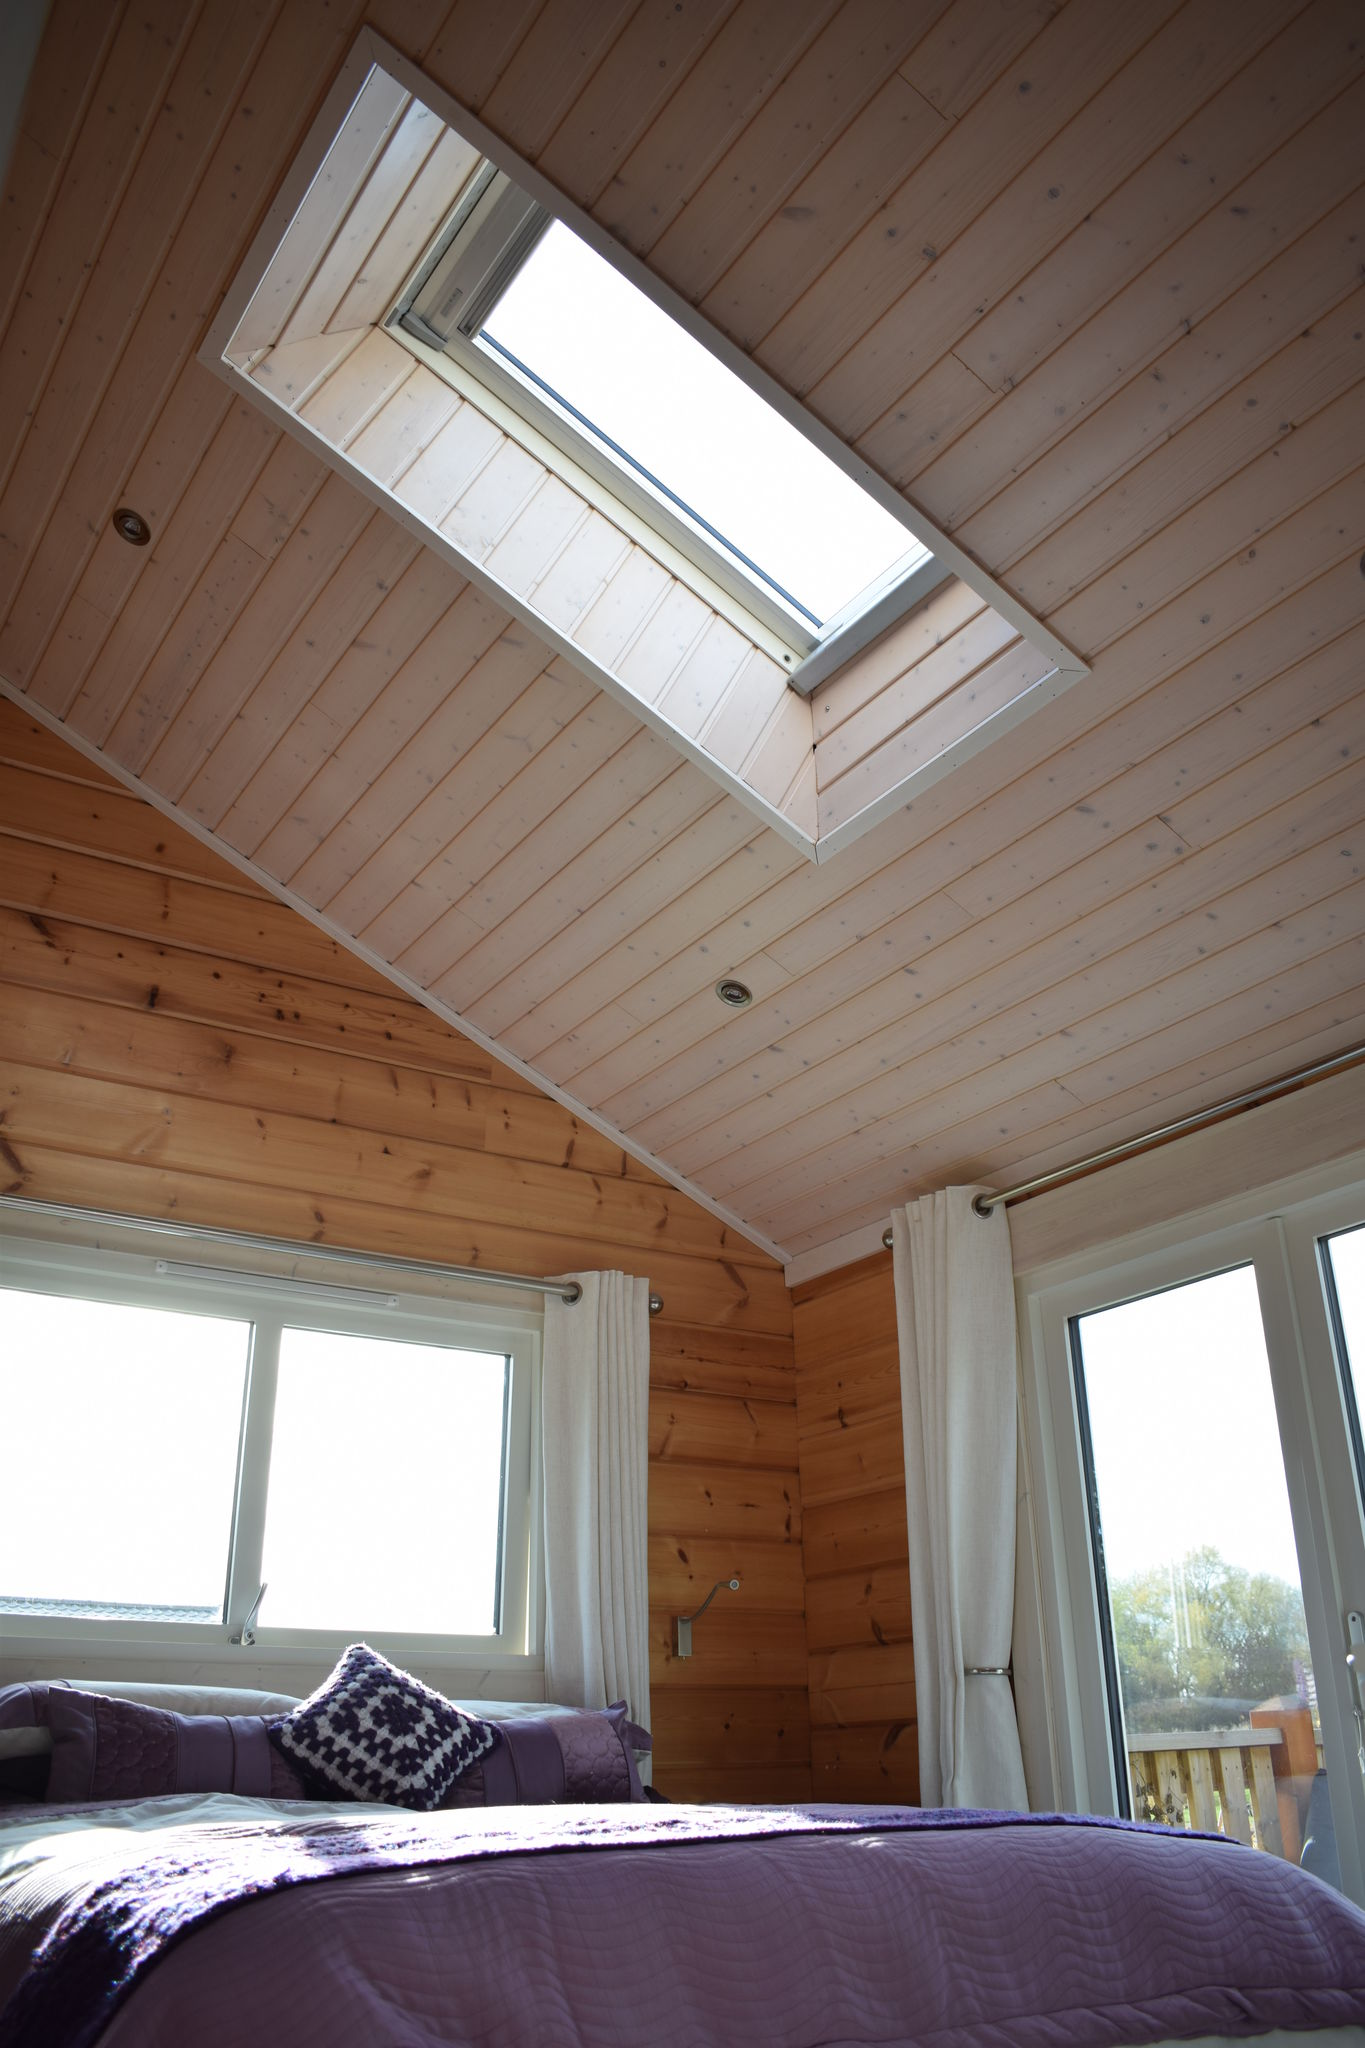 Roof Window in Bedroom